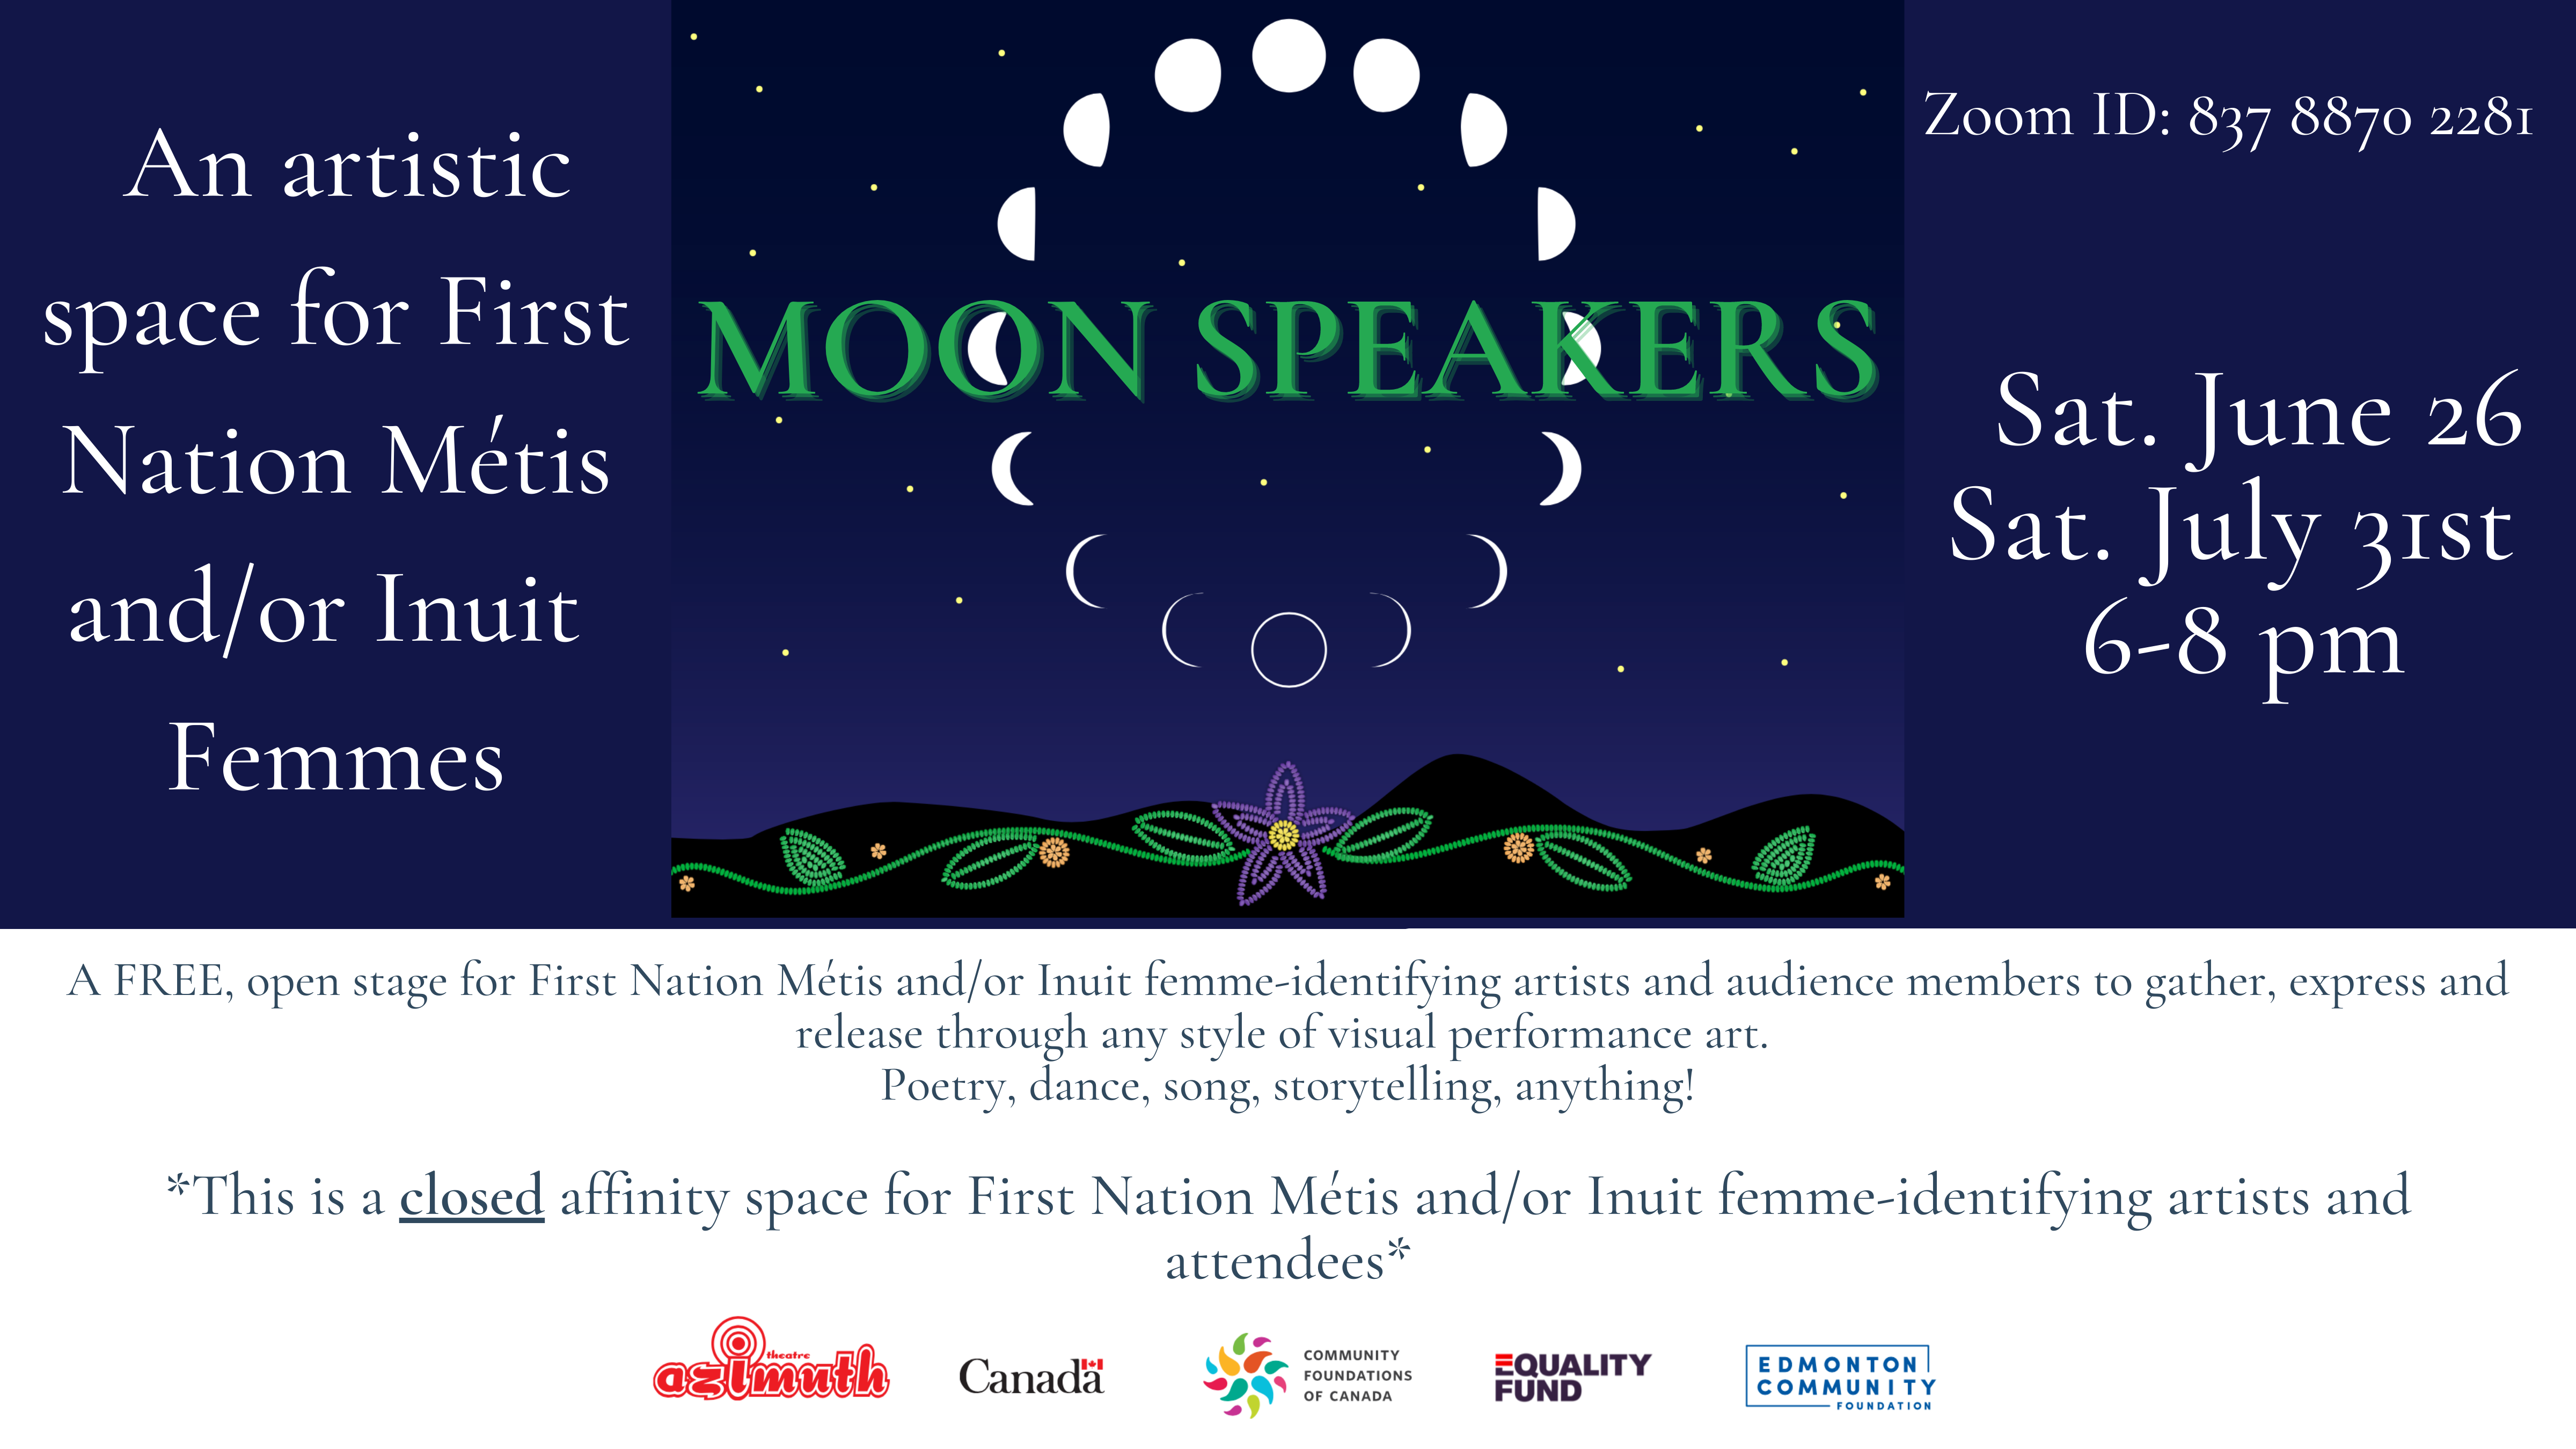 Illustrated phases of the moon in a circle, on a blue starry background, with beaded green leaves and a purple beaded flower on a black waved border on the bottom of the image, with the words Moon Speakers.